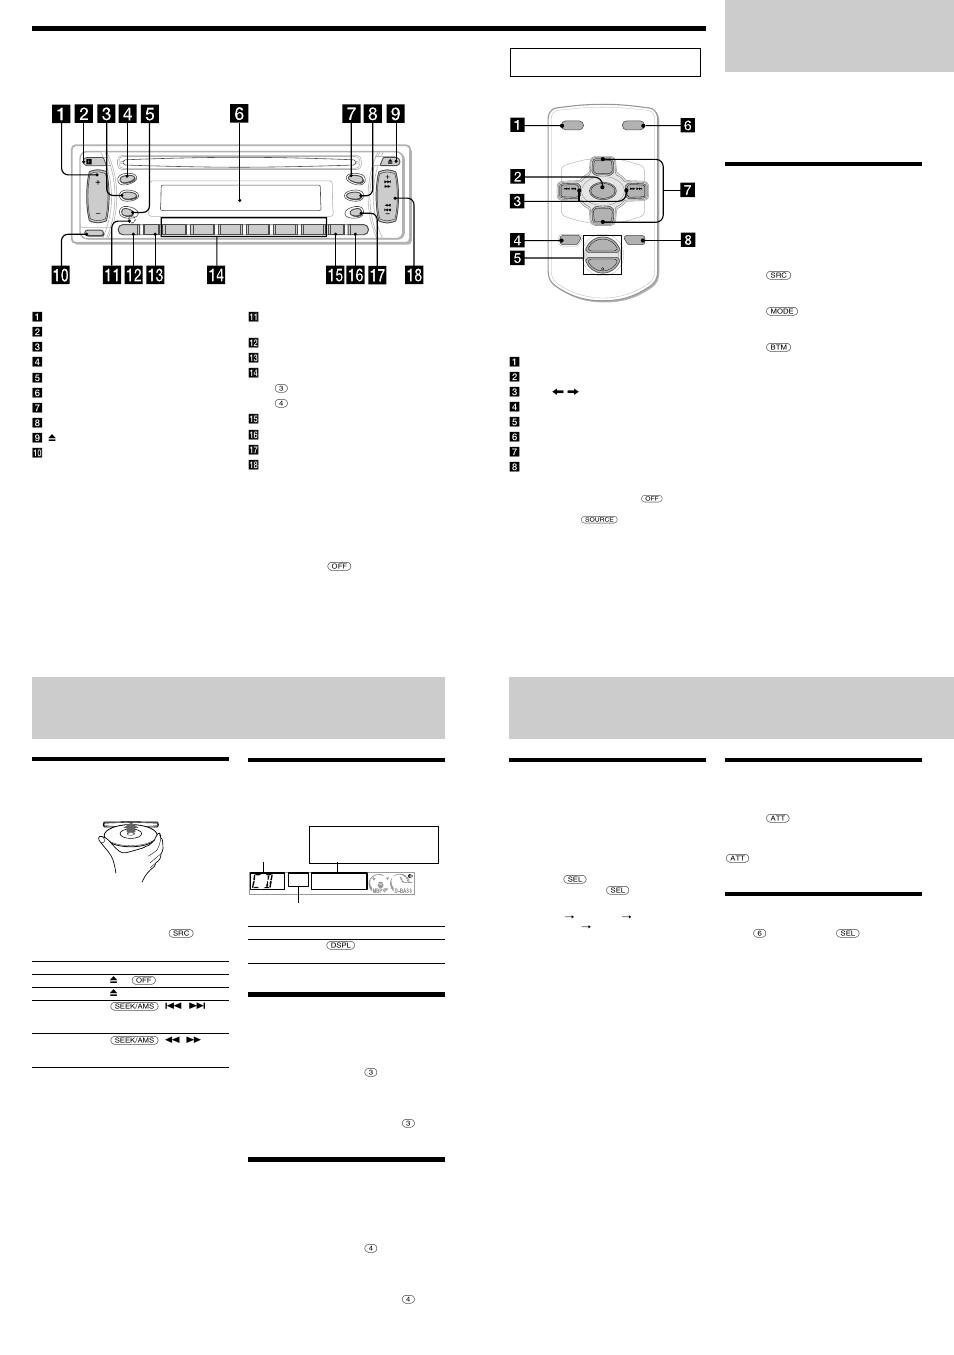 sony cdx l350 wiring diagram isuzu kb 300 radio cd player other functions user manual page 3 4